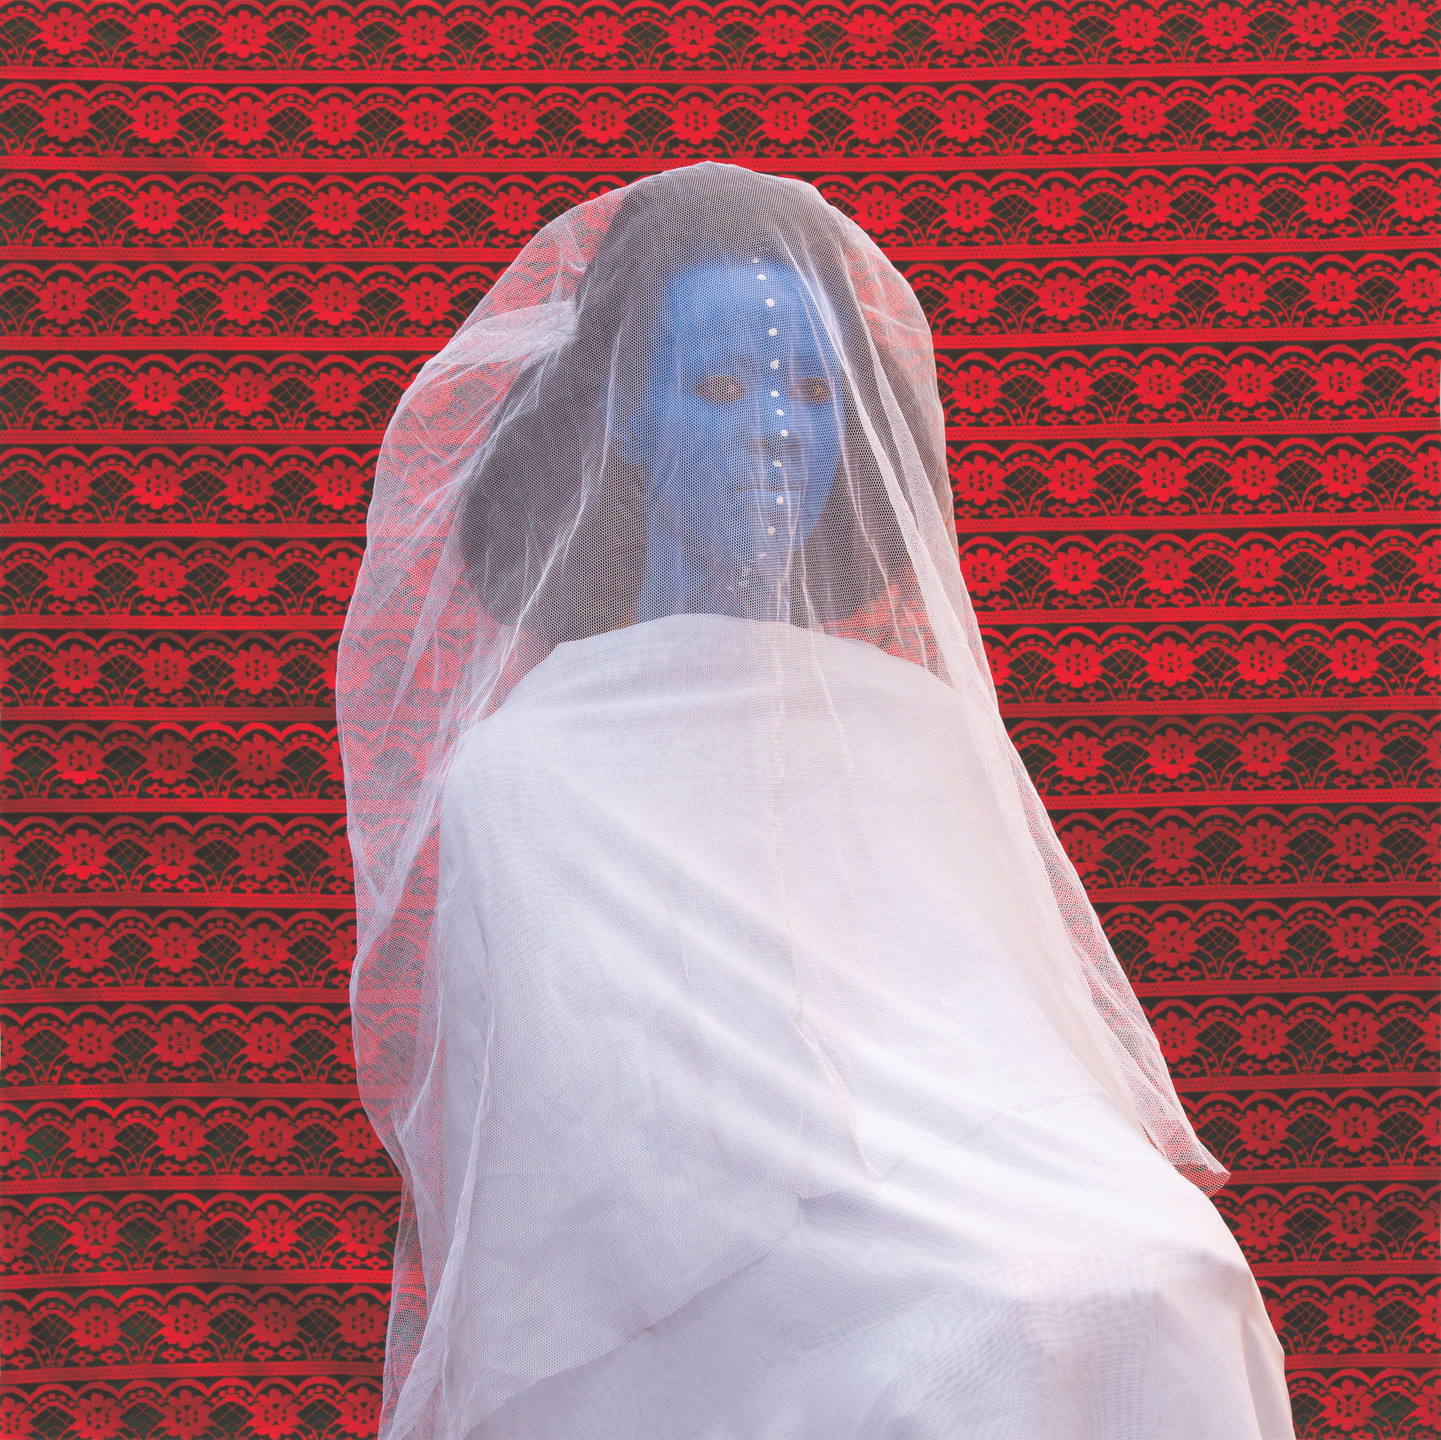 Aïda Muluneh. Morning Bride. 2016